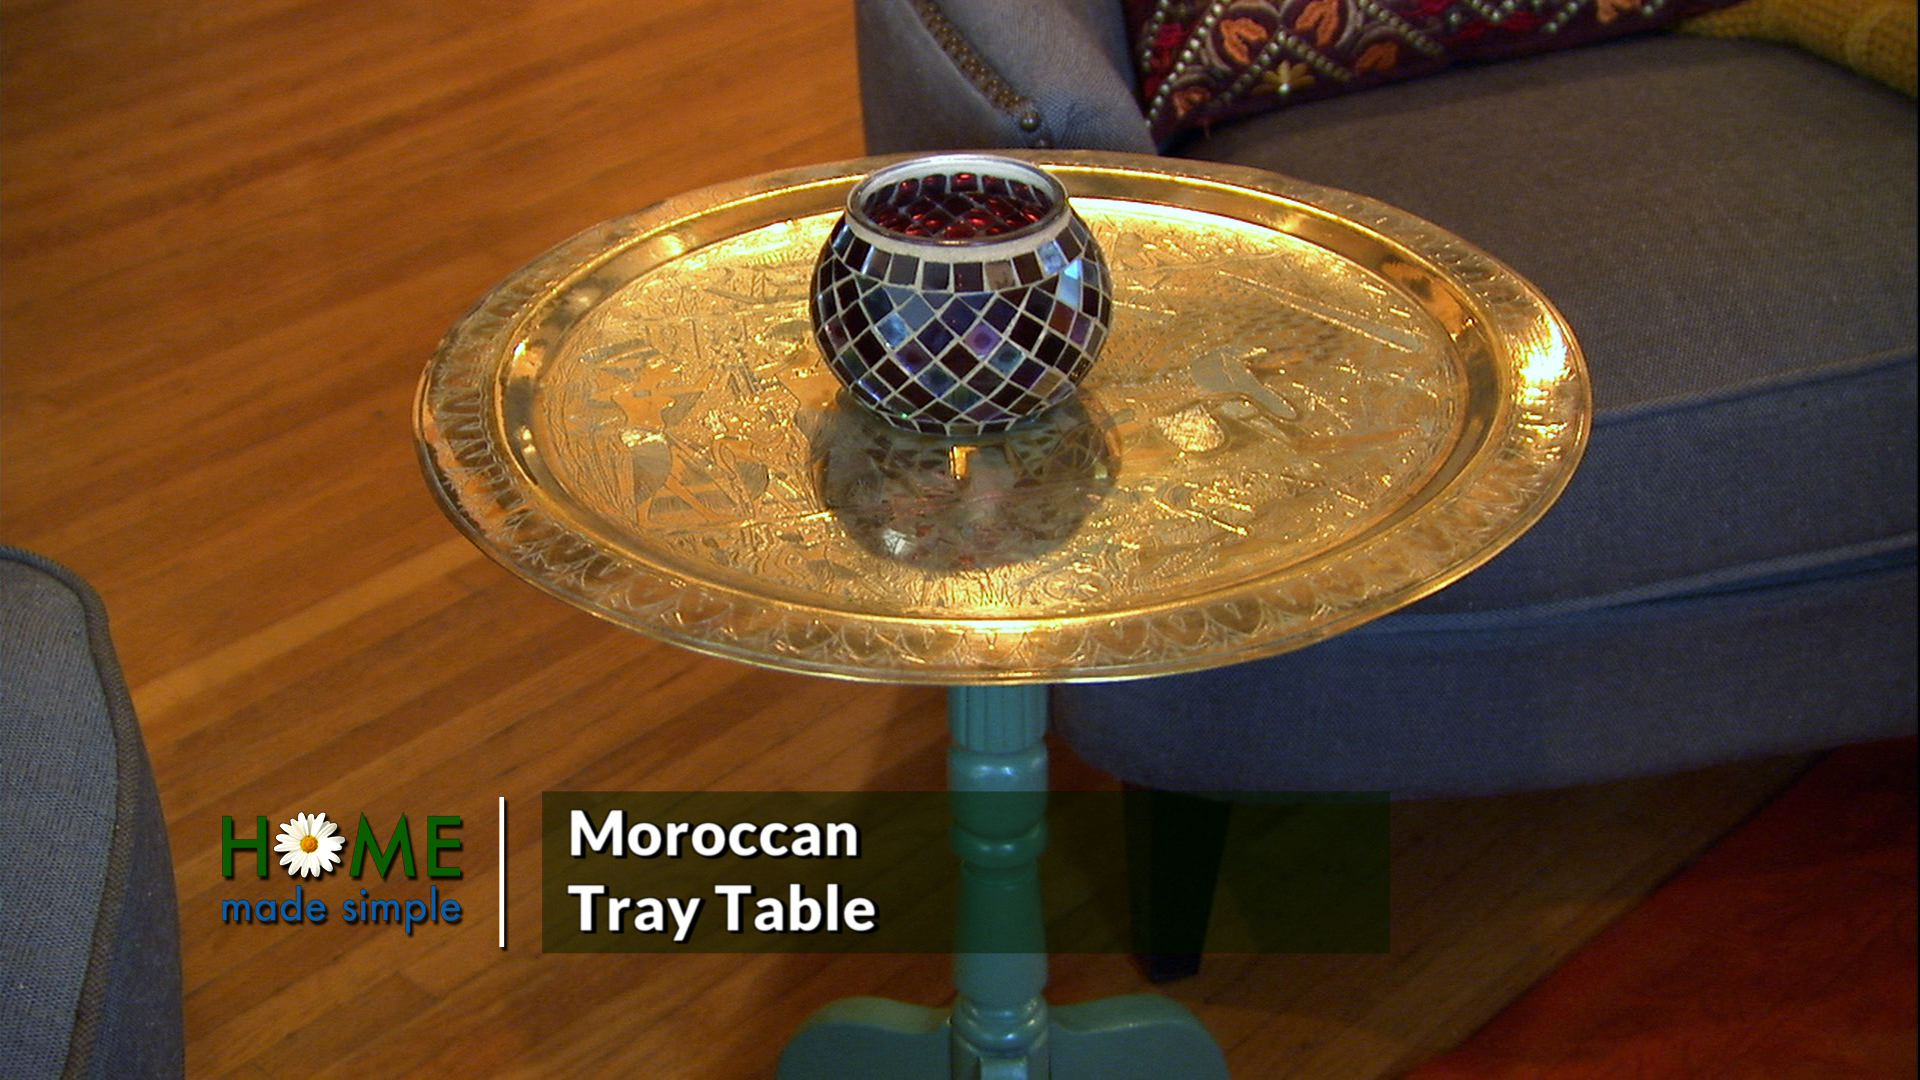 3 Easy Steps to Turn Thrift Shop Finds into a Moroccan Tray Table